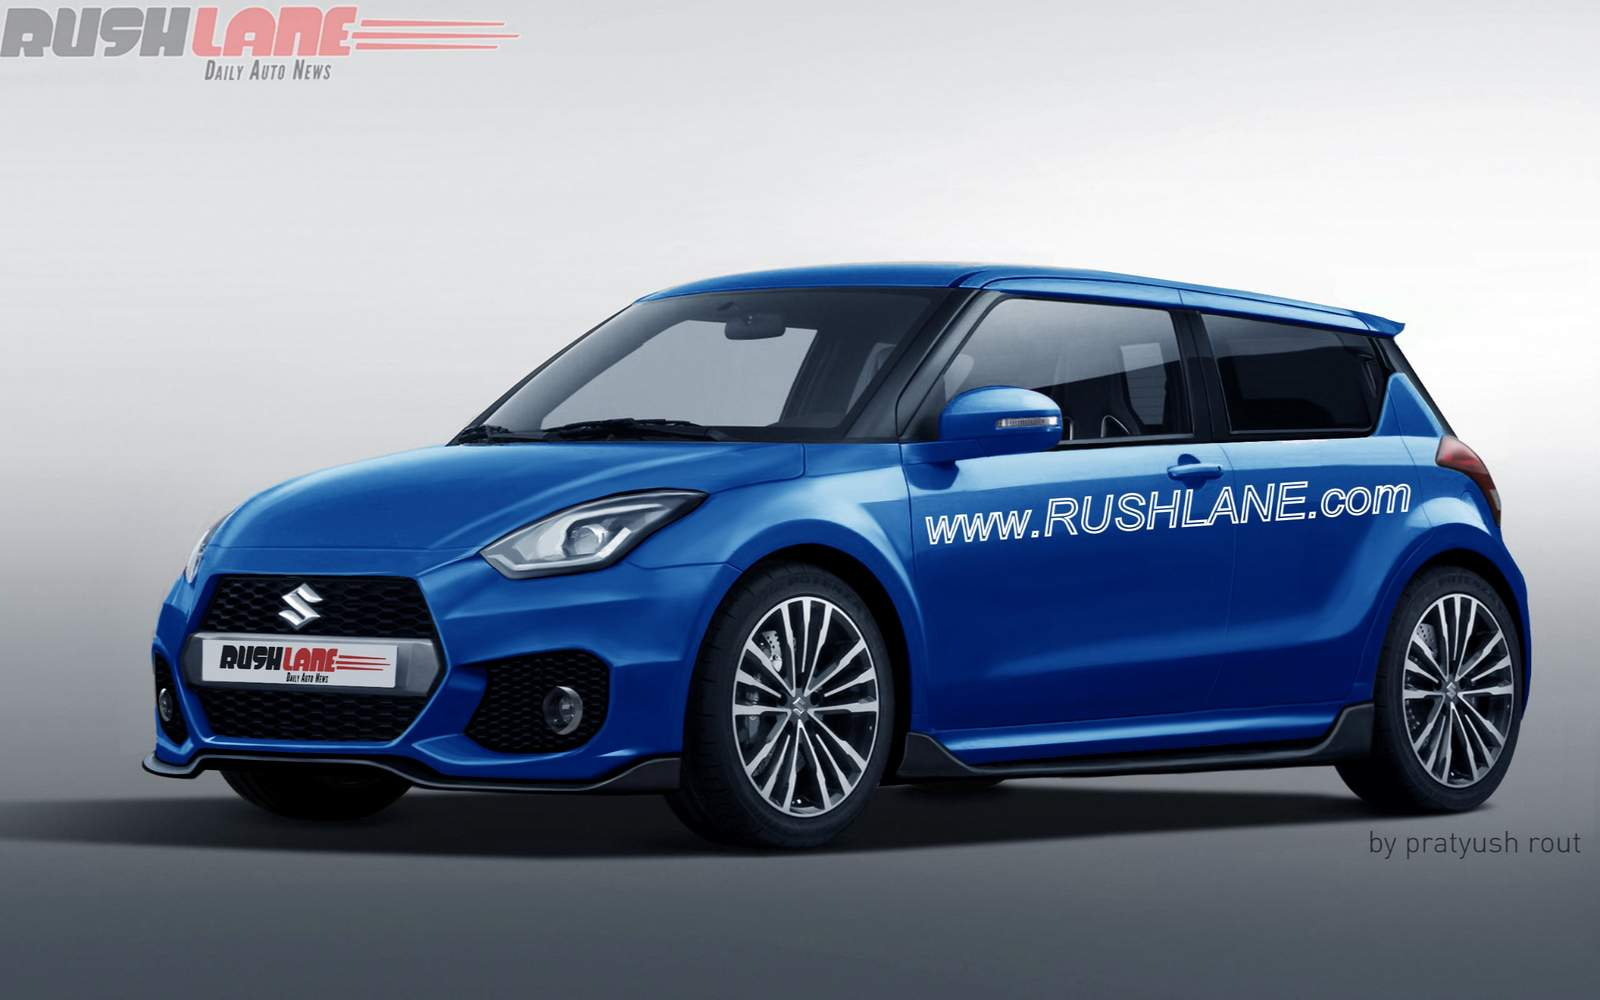 2017 suzuki swift sport blue rendered bharathautos automobile rh bharathautos com 2019 Suzuki Swift Sport Suzuki Vitara